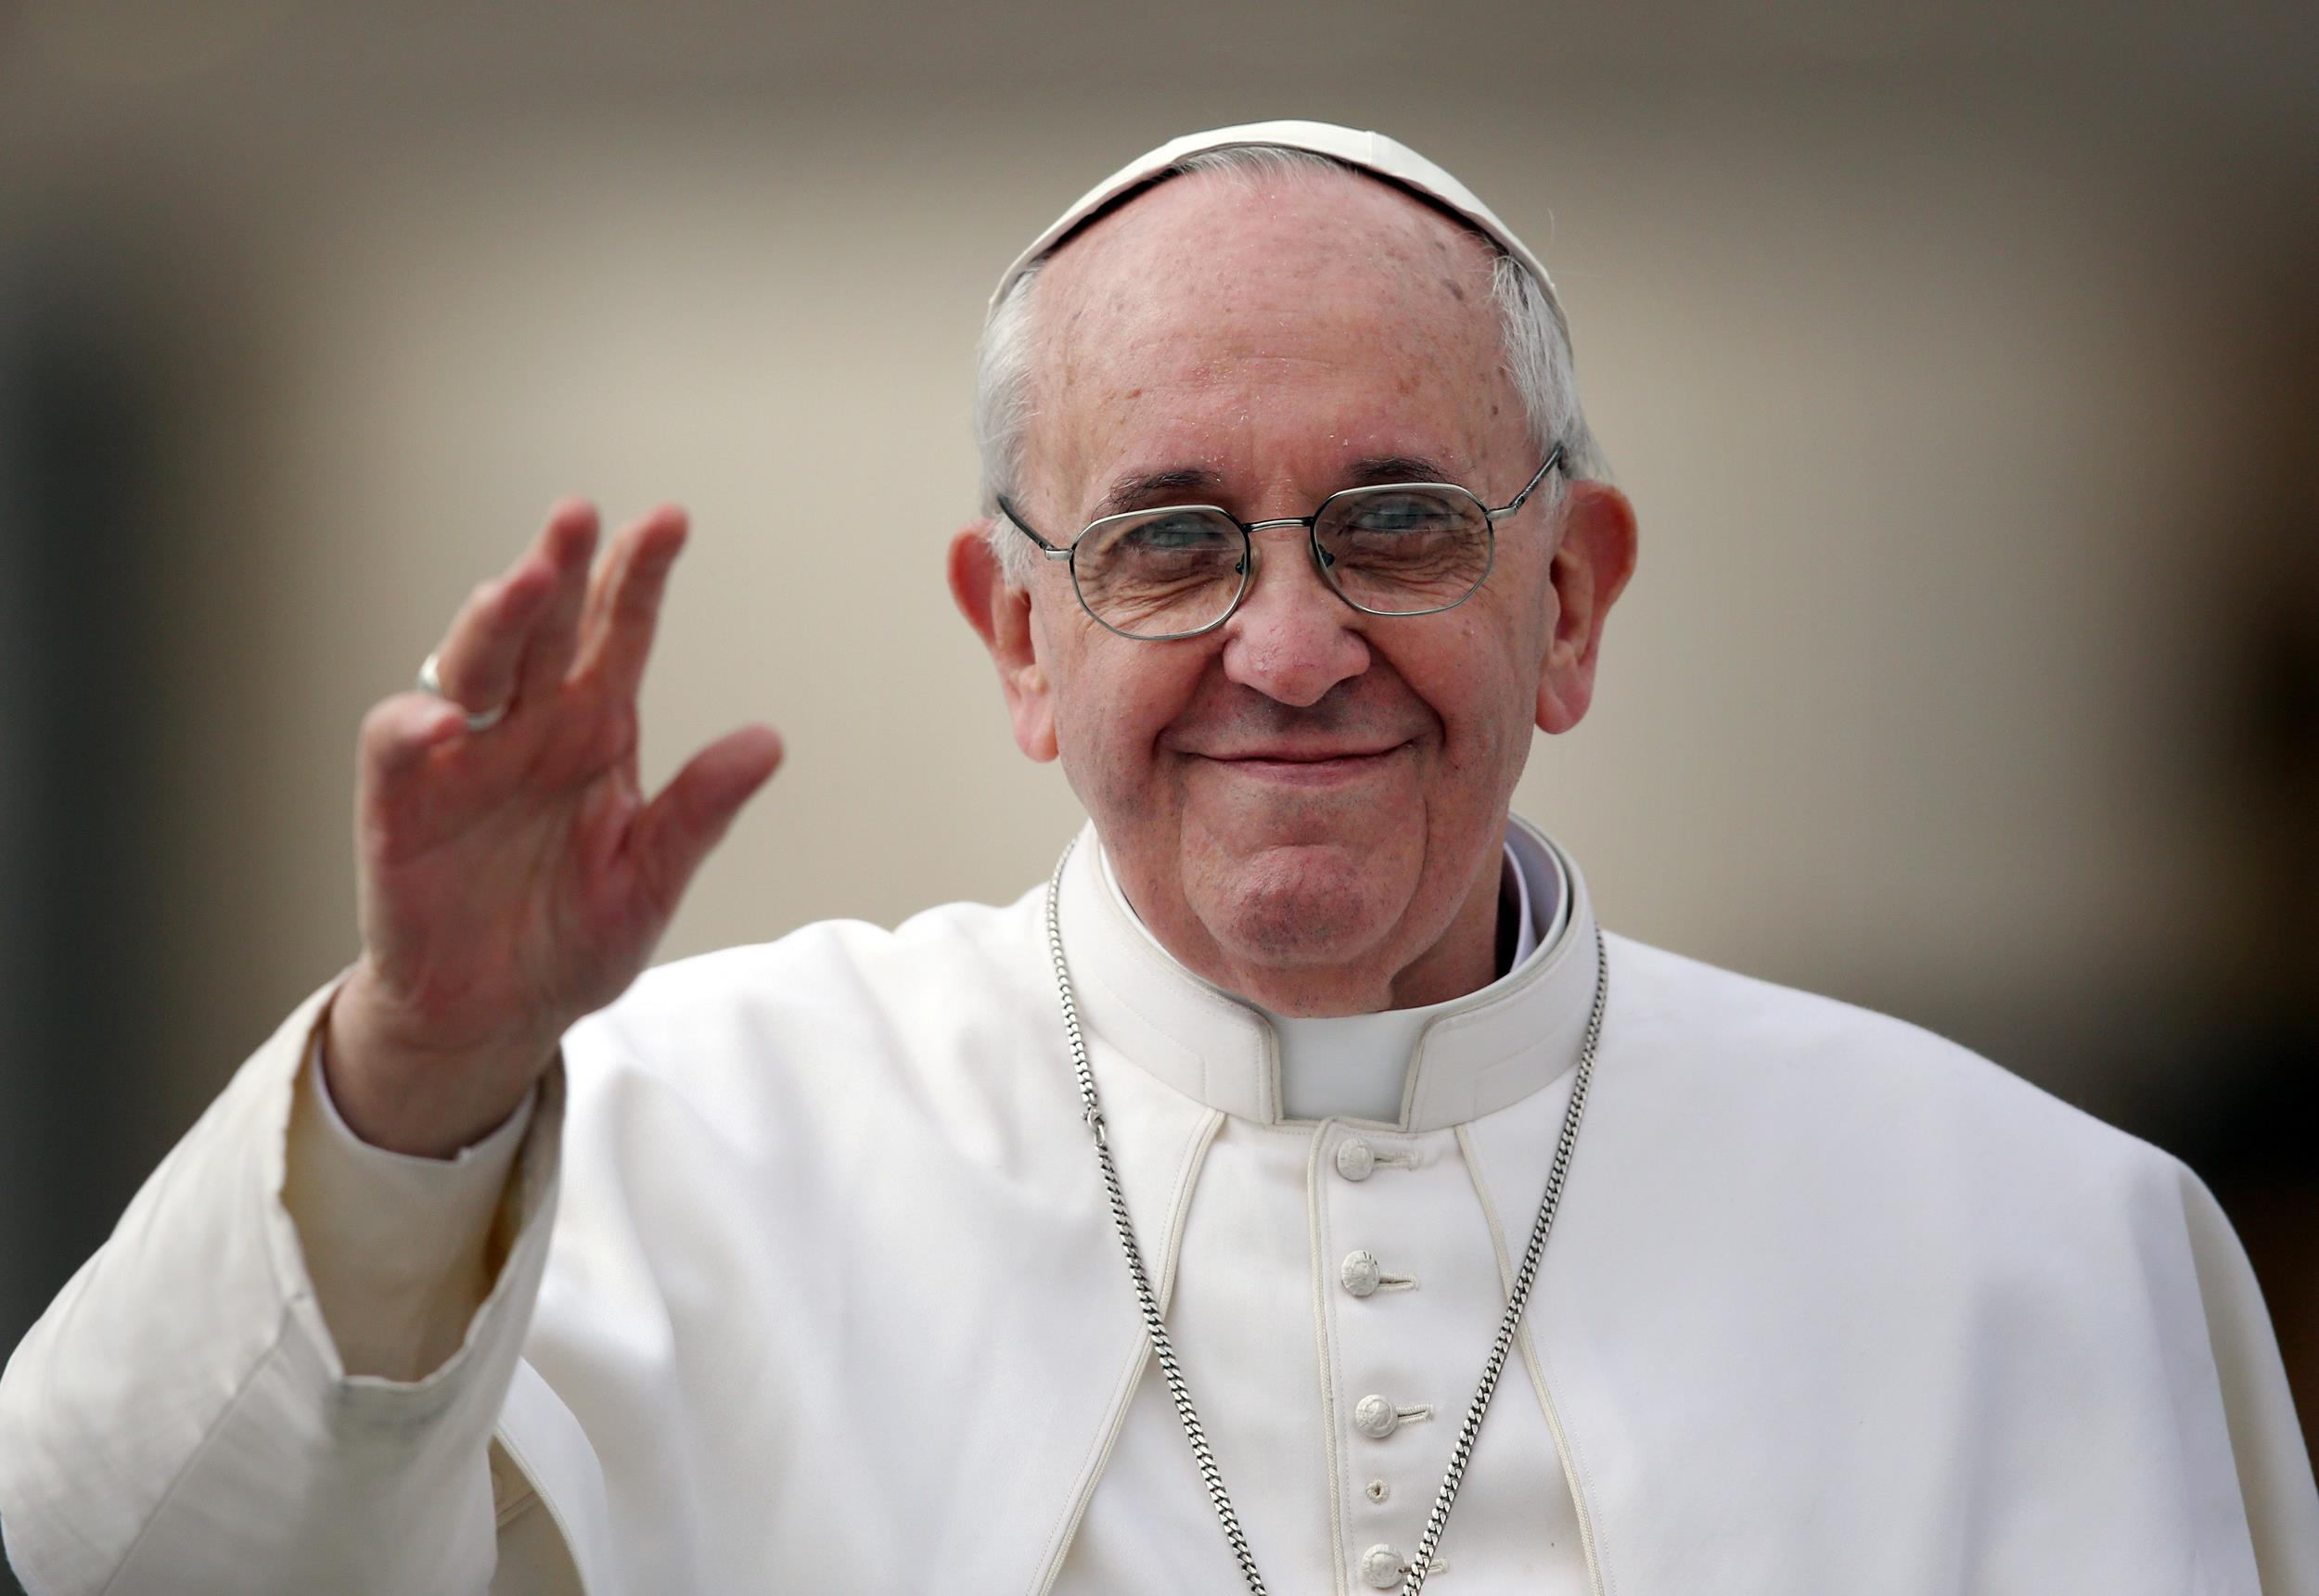 Pope Francis issues cautious statements about GMOs